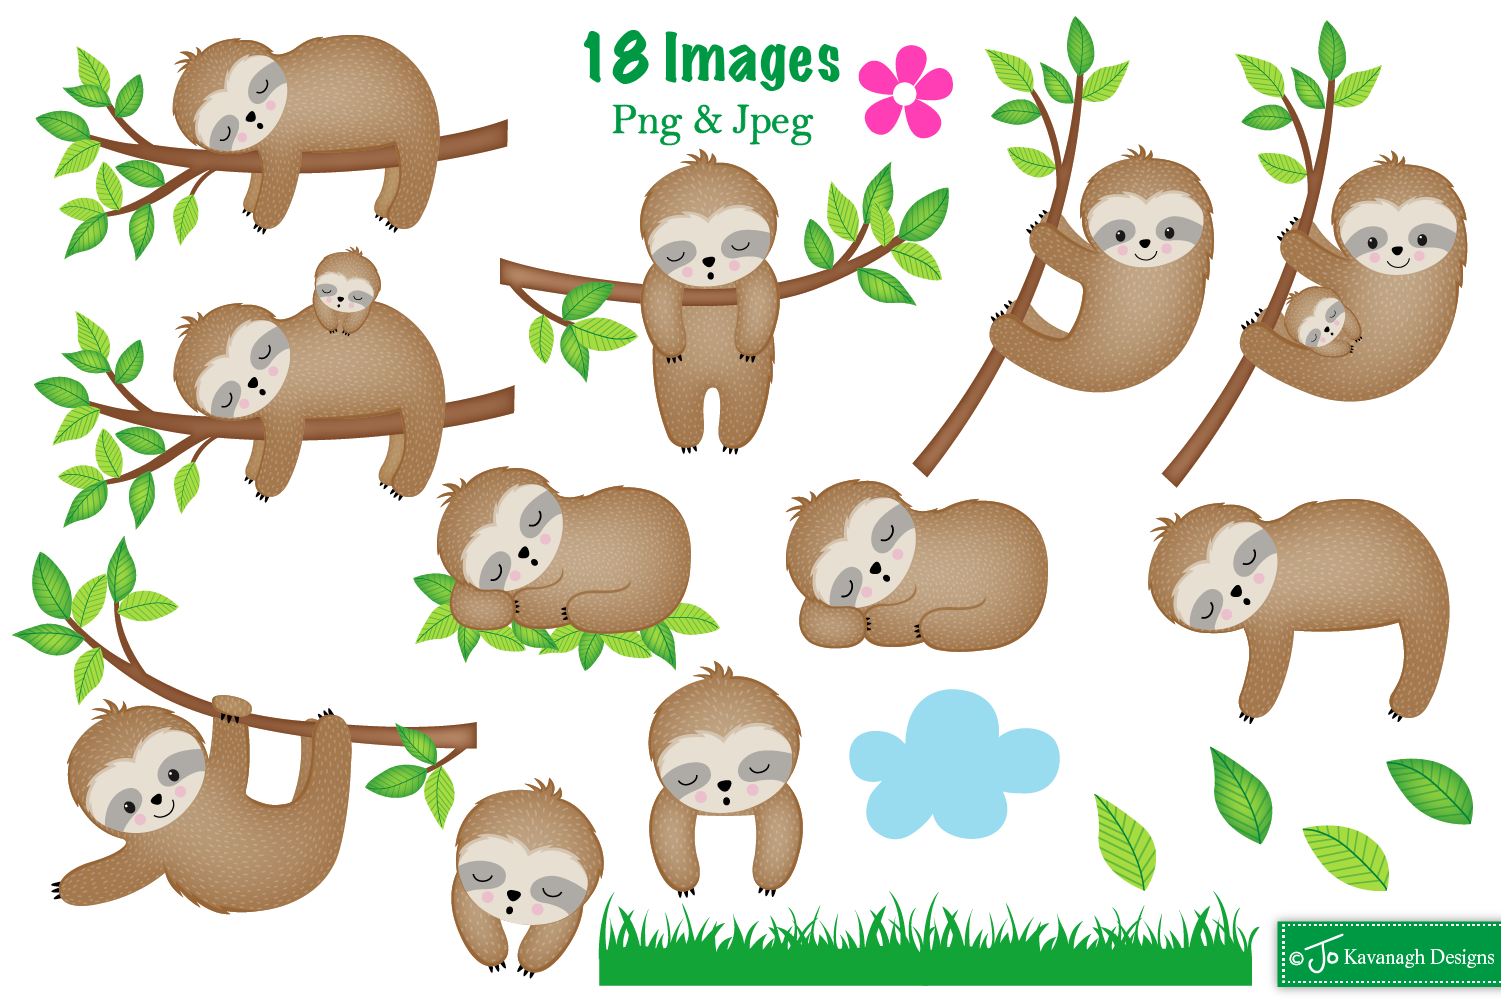 Sloth clipart,Sloth graphics & illustrations,Cute Sloths C28 example image 2